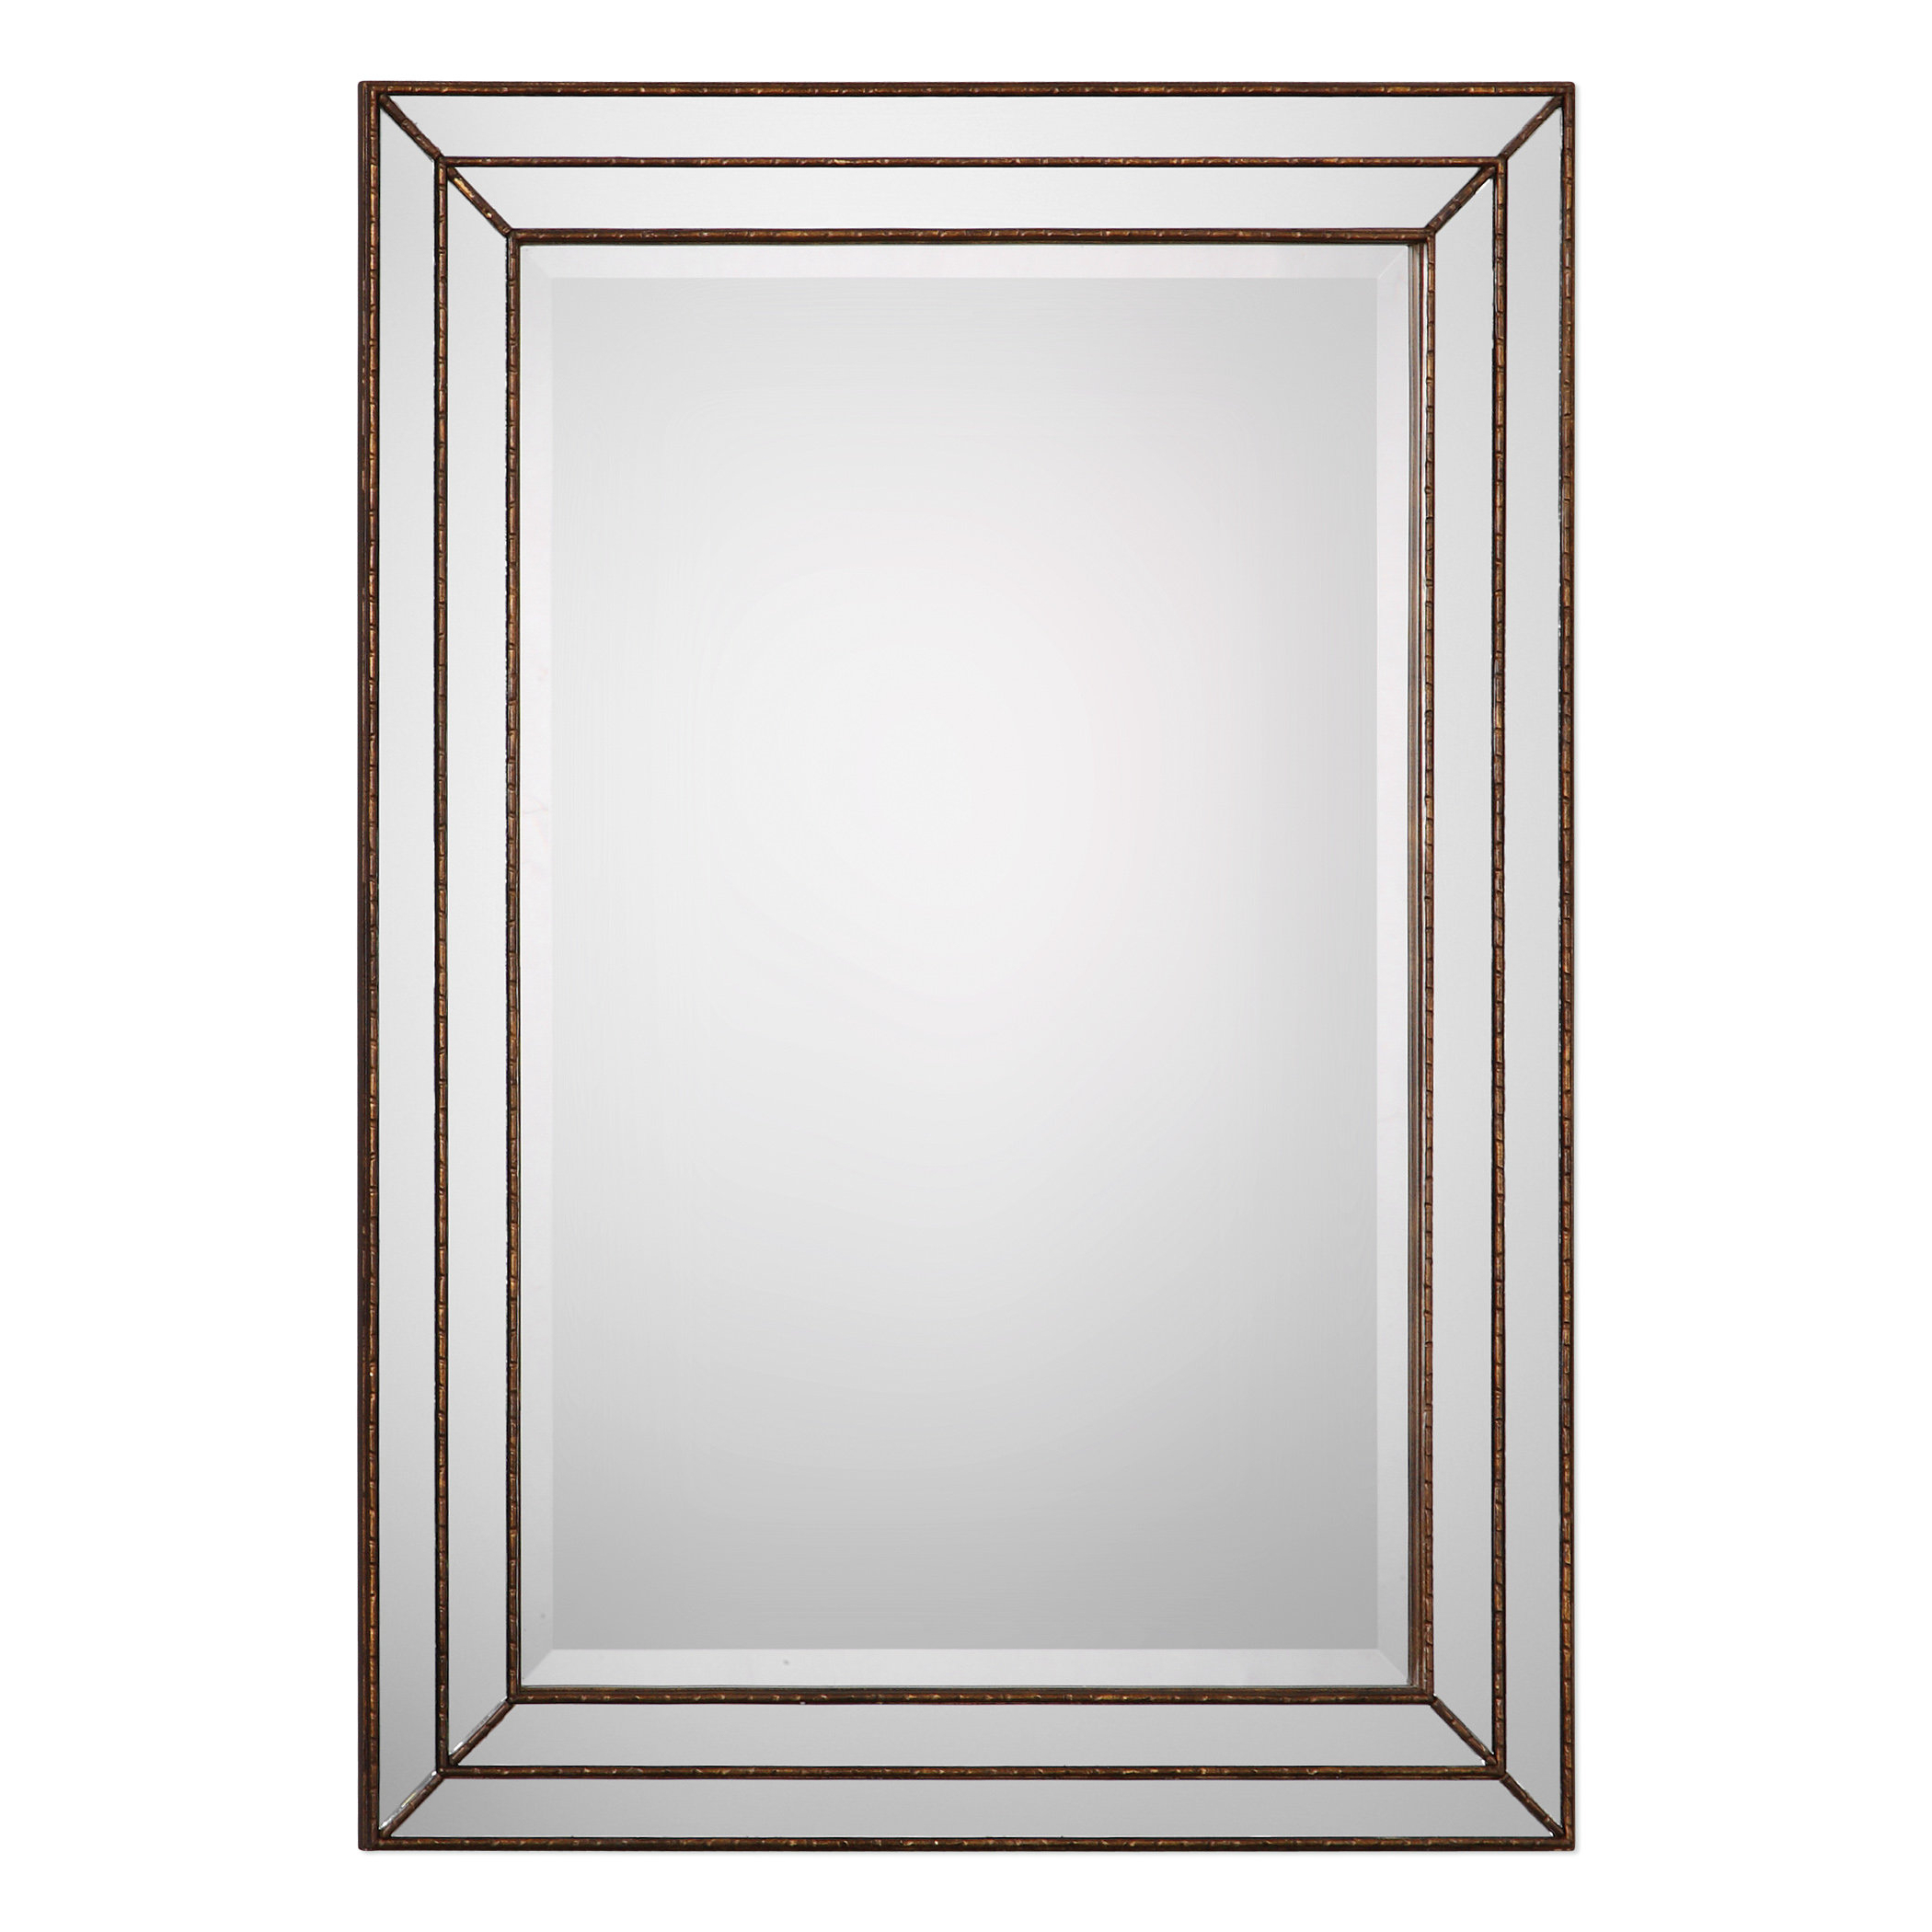 Widely Used Willacoochee Traditional Beveled Accent Mirror Pertaining To Tutuala Traditional Beveled Accent Mirrors (Gallery 6 of 20)